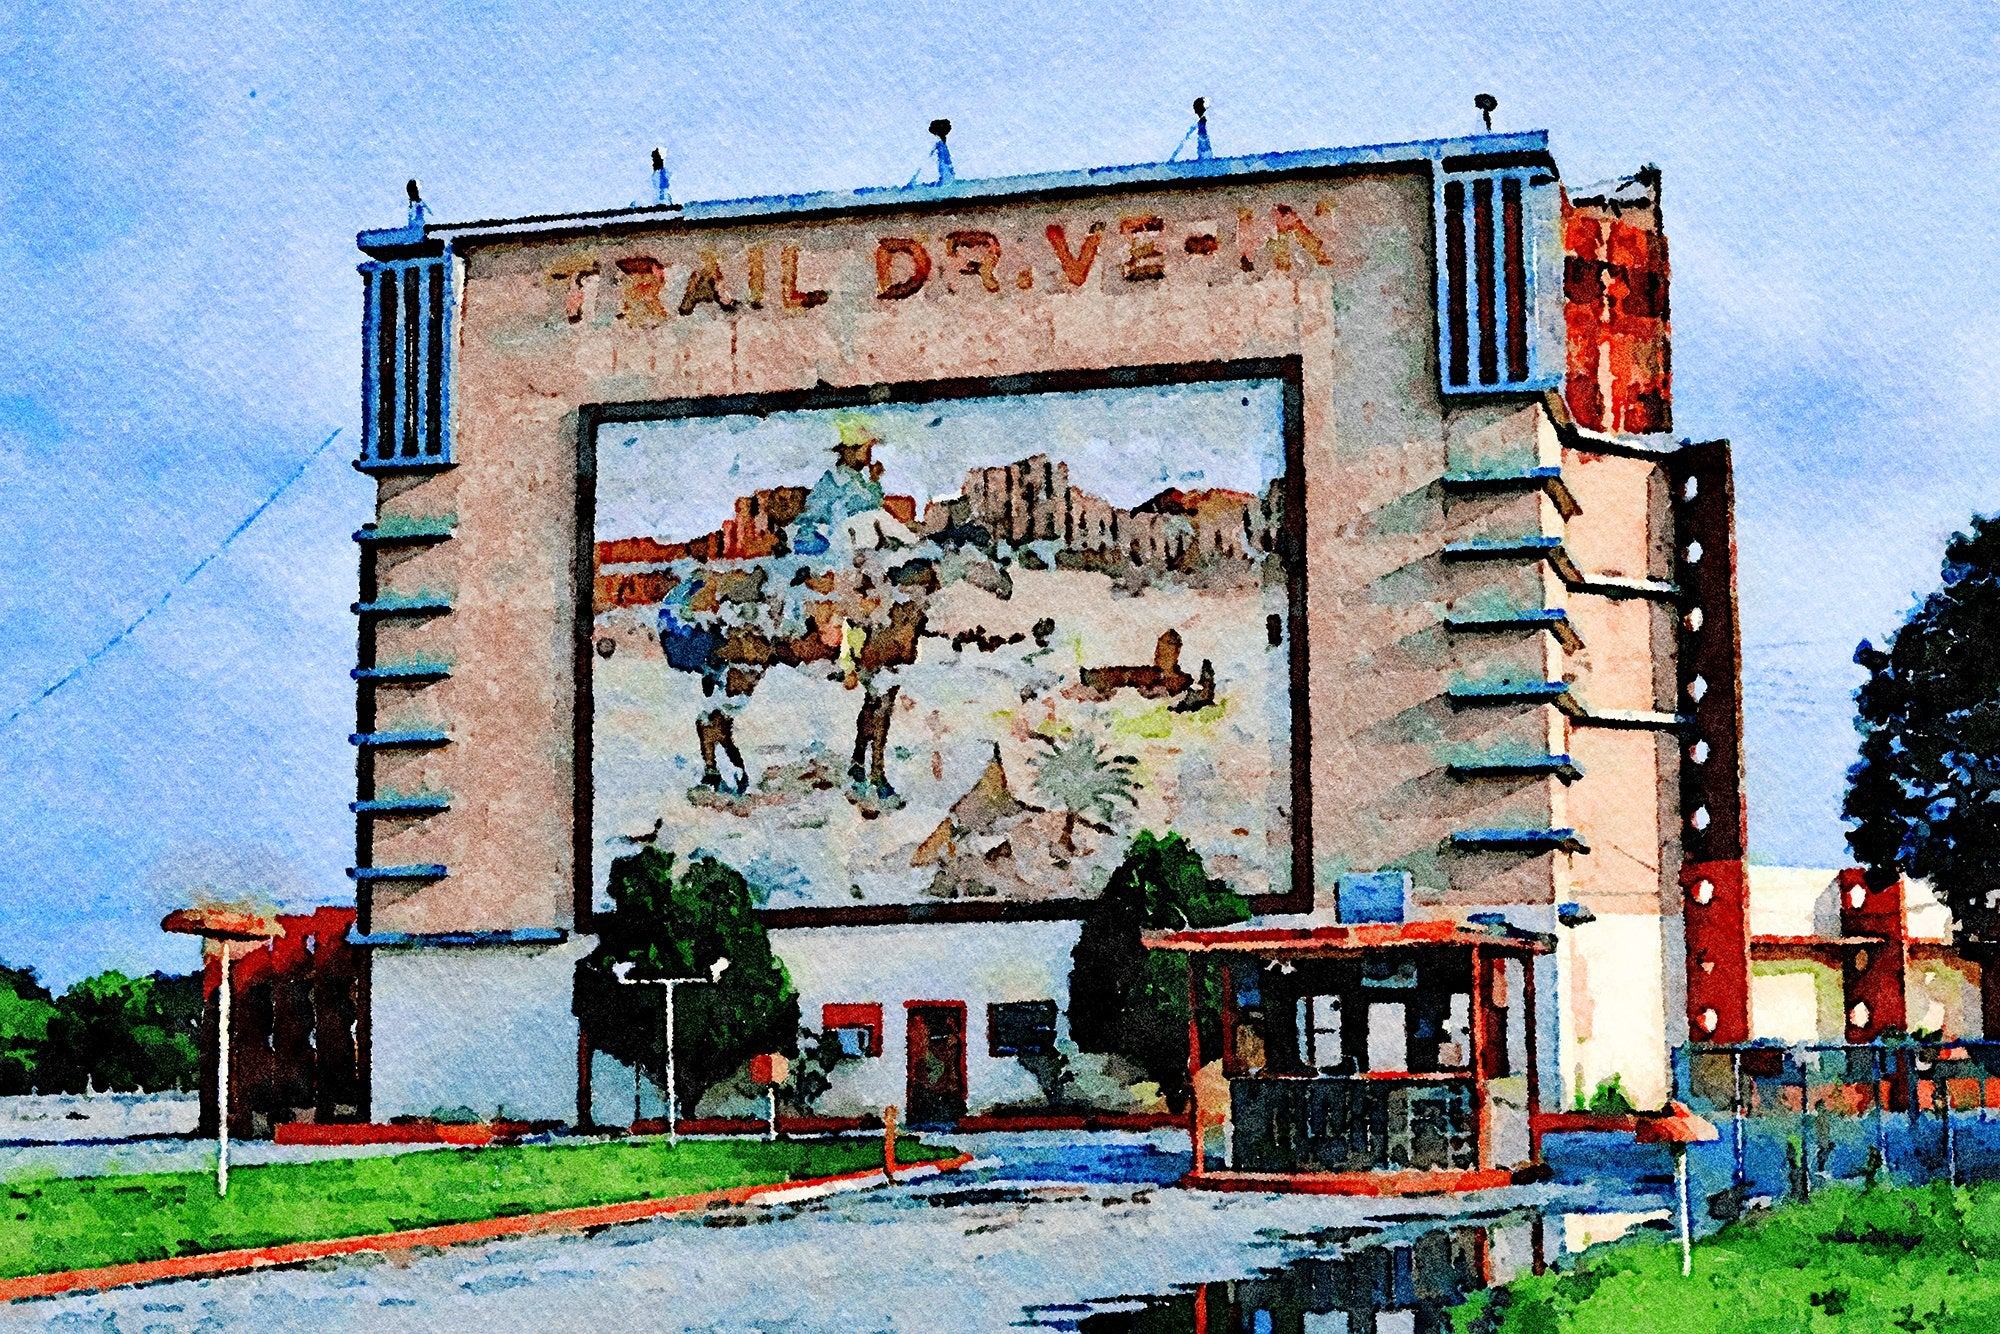 Trail Drive-In Theater, San Antonio, Texas, Reworked, Series 1